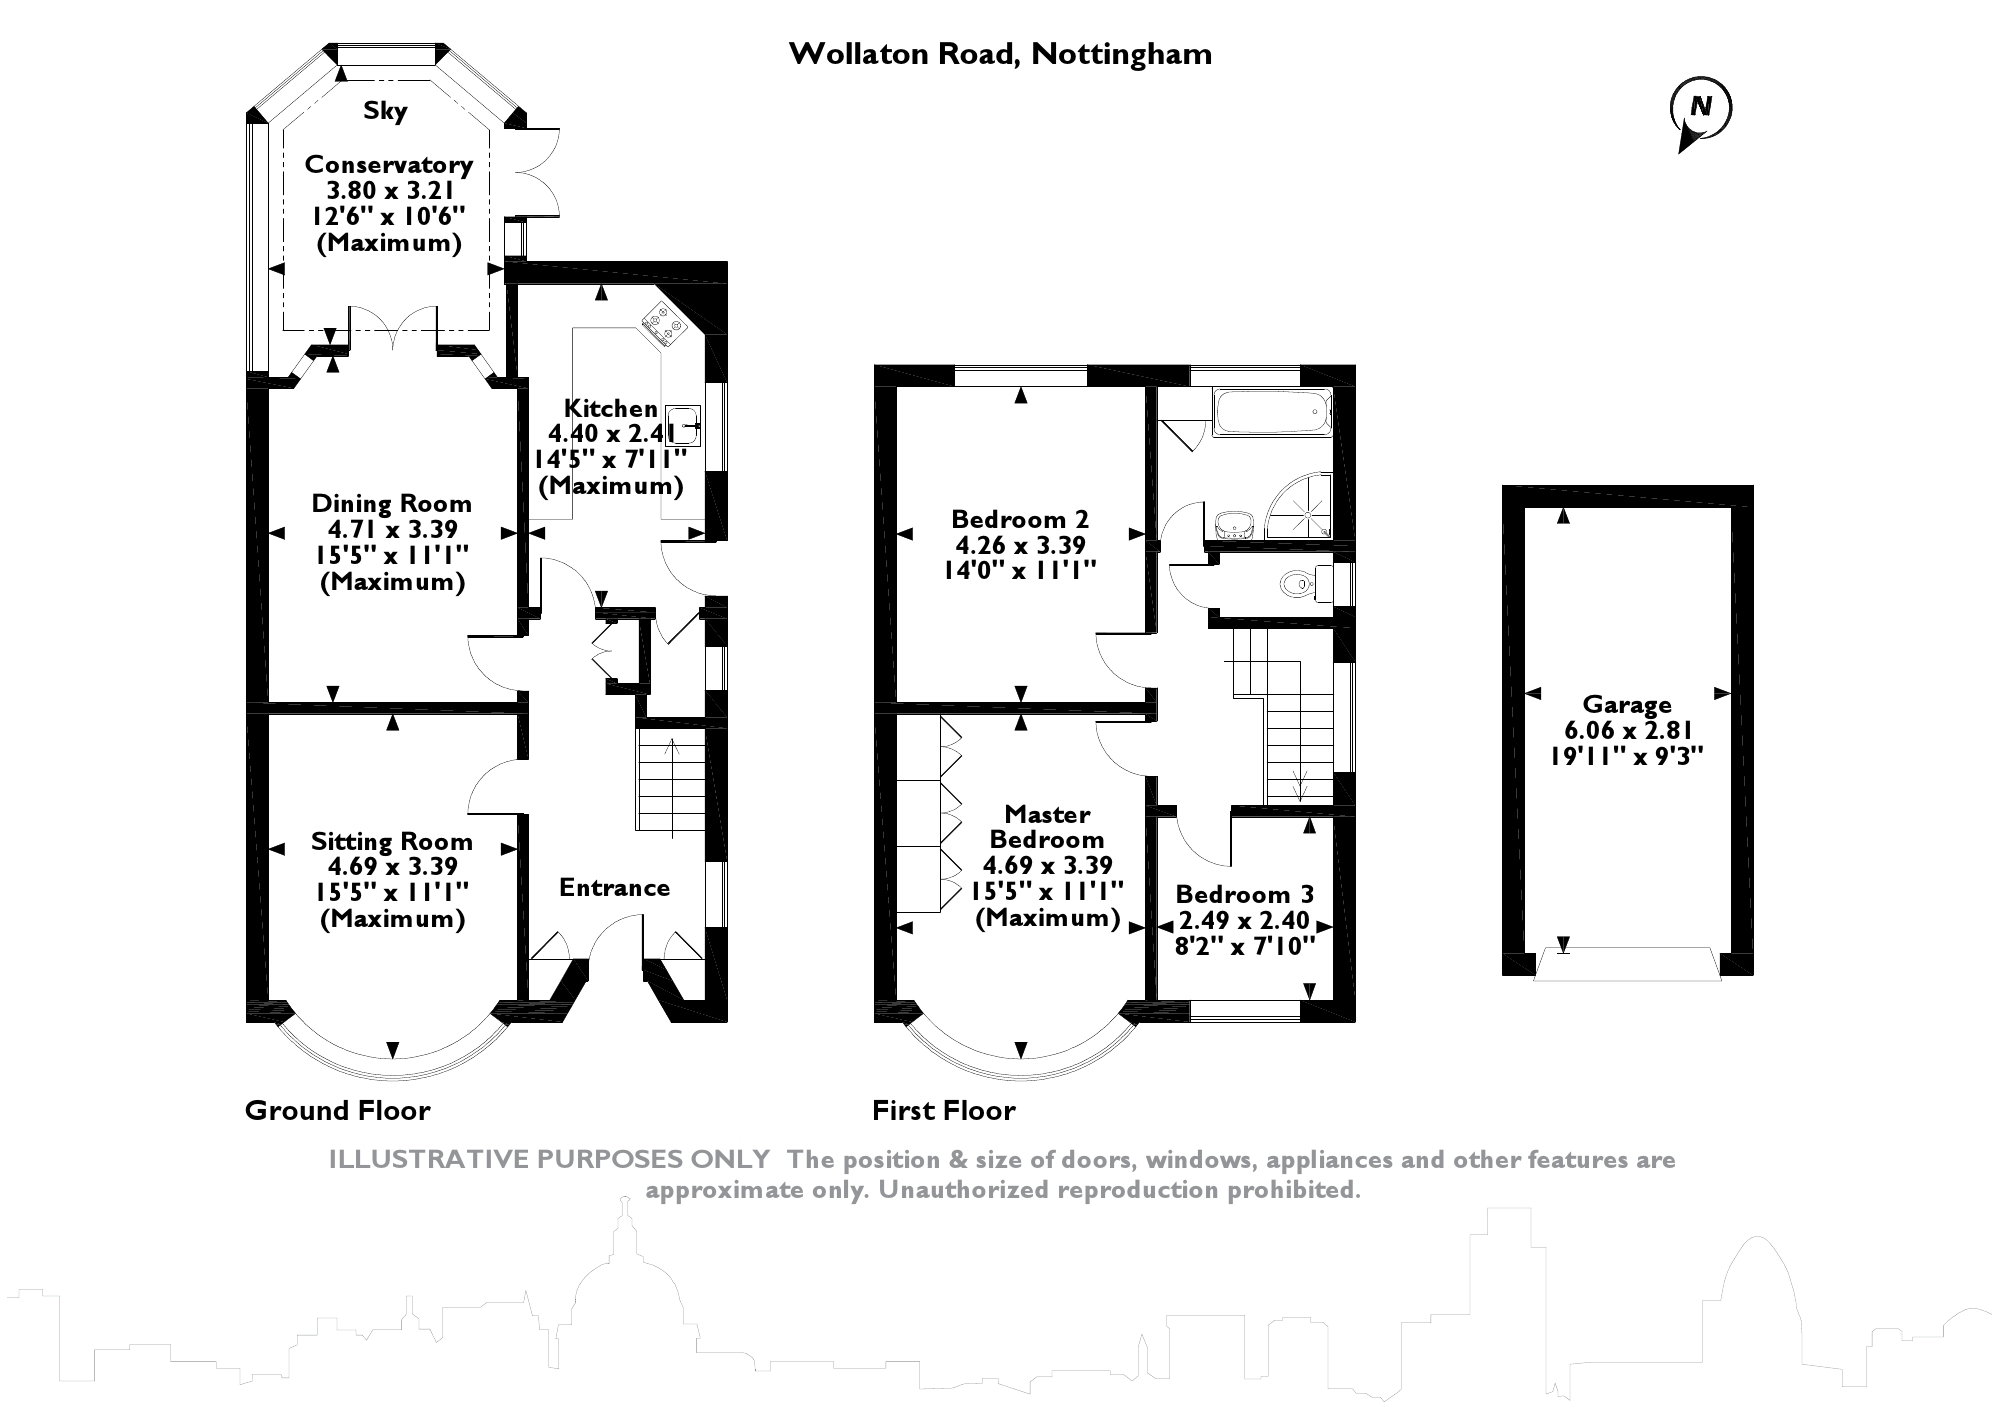 Wollaton Road, Nottingham, NG8 floor plan